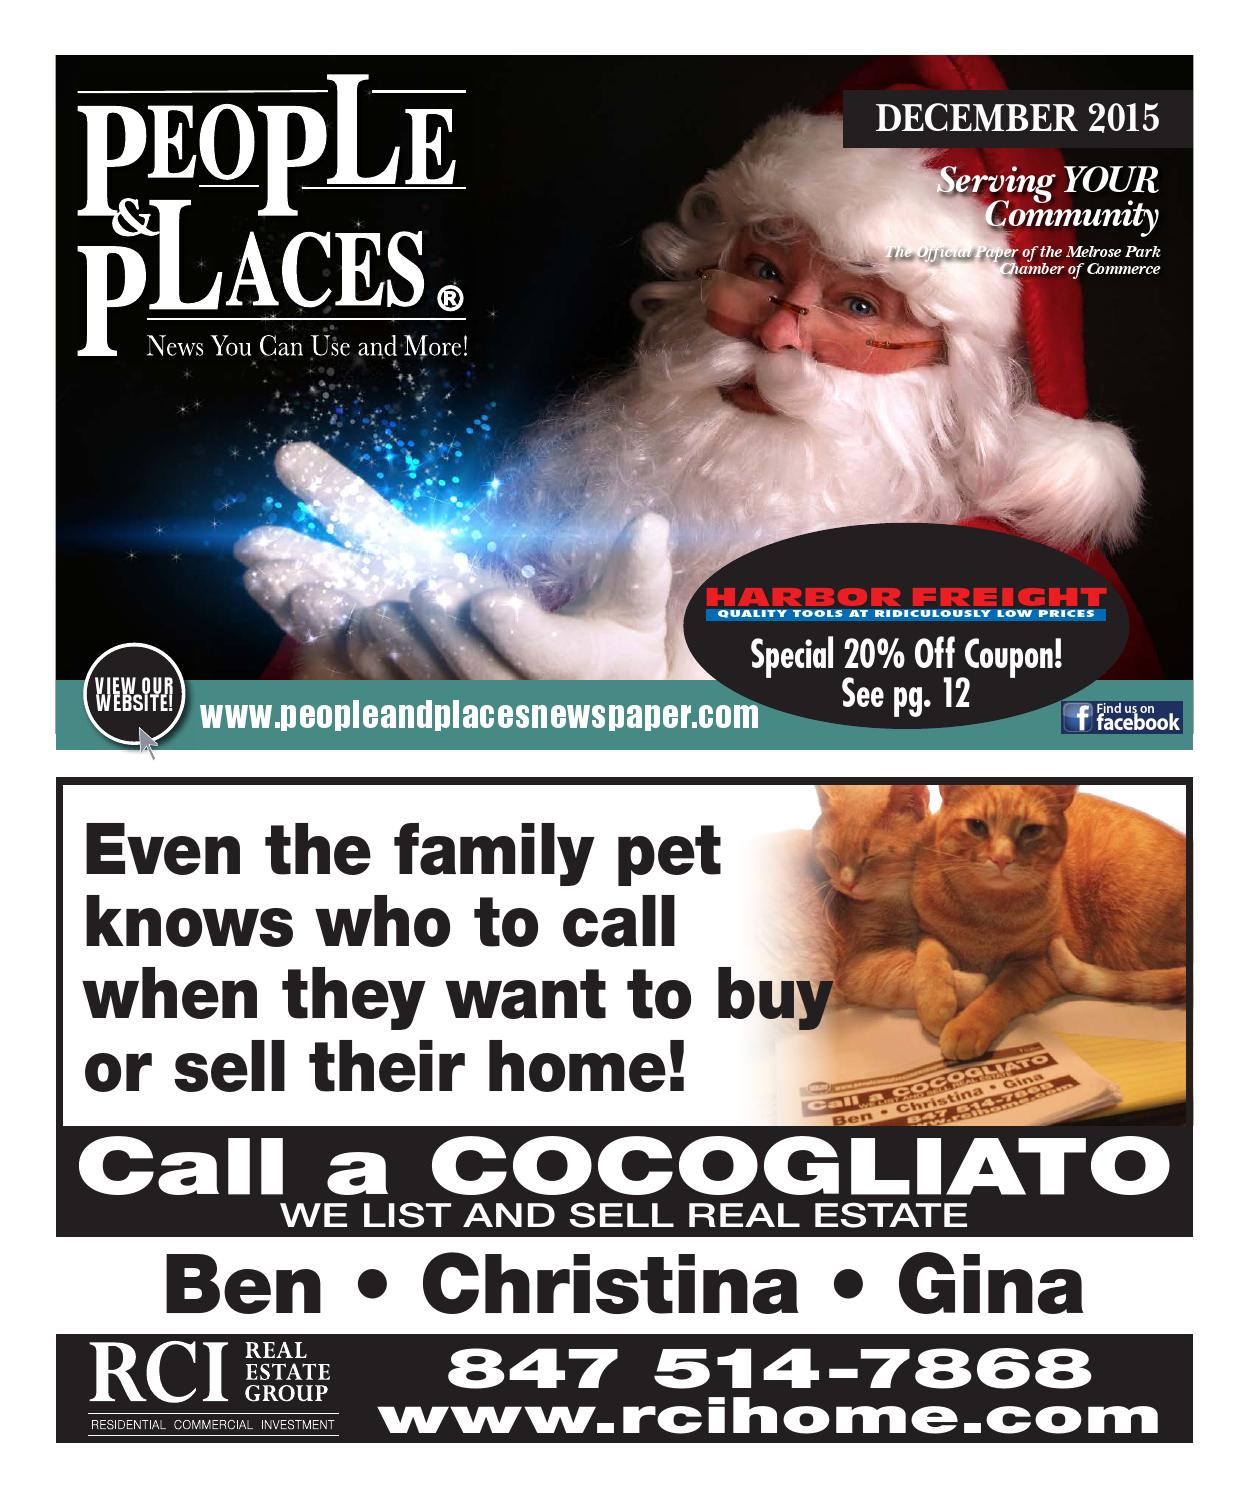 325e1fe4abe5f December 2015 People & Places Newspaper by Jennifer Creative - issuu